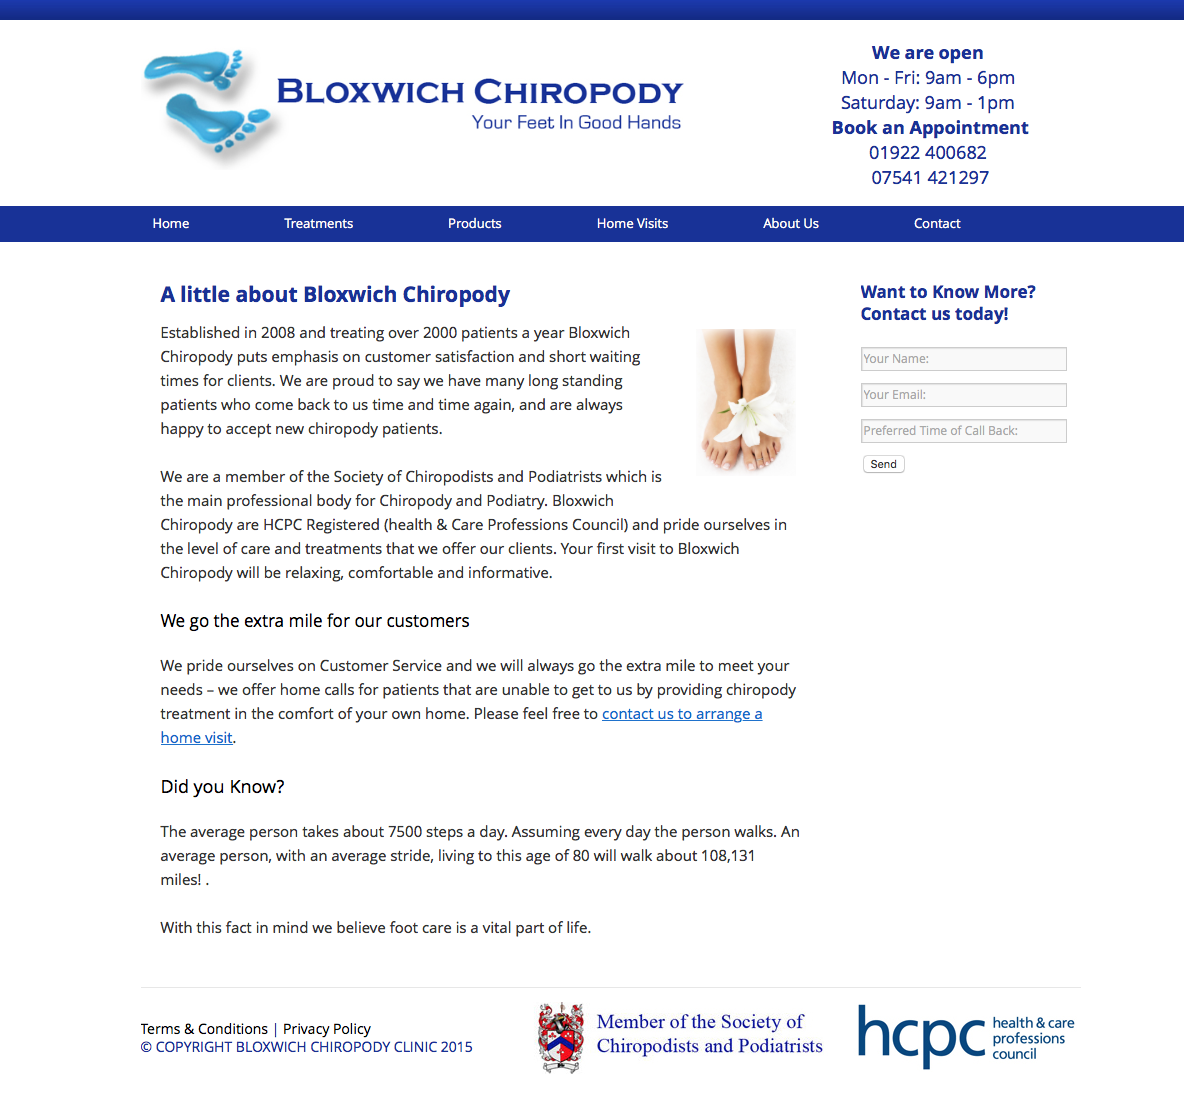 Web design for a Chiropody Clinic